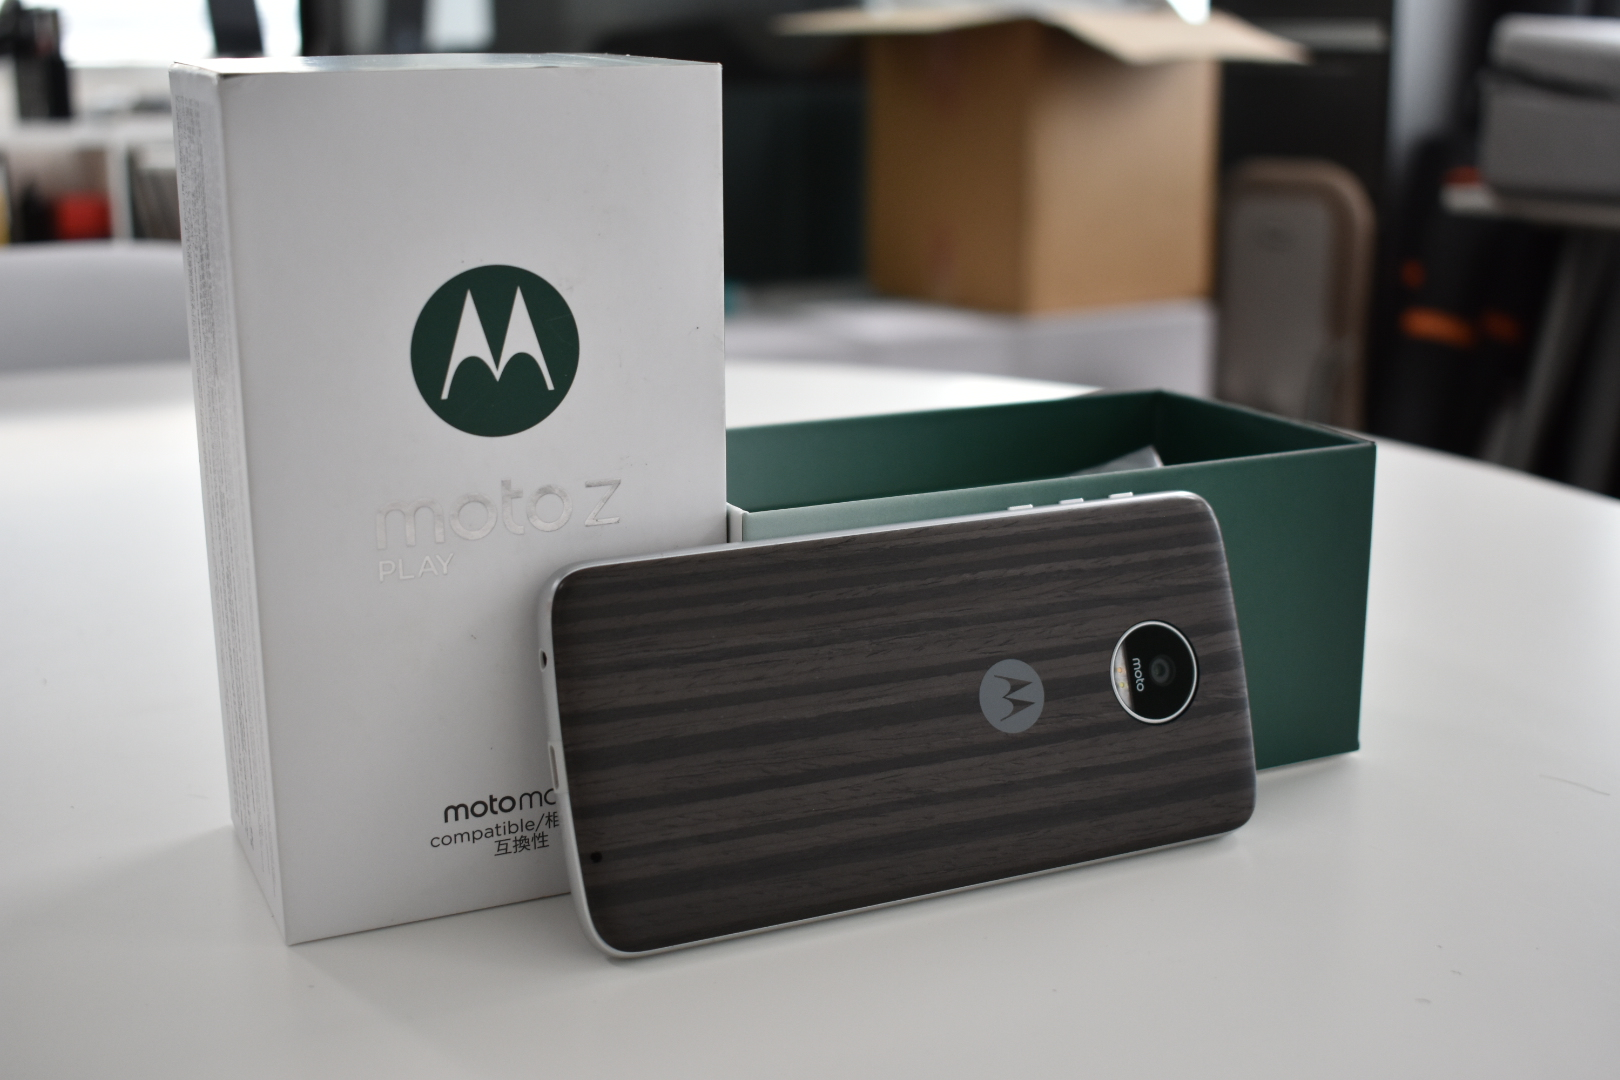 DSC 0132 Review: Moto Z Play Takes MotoMods To The Masses